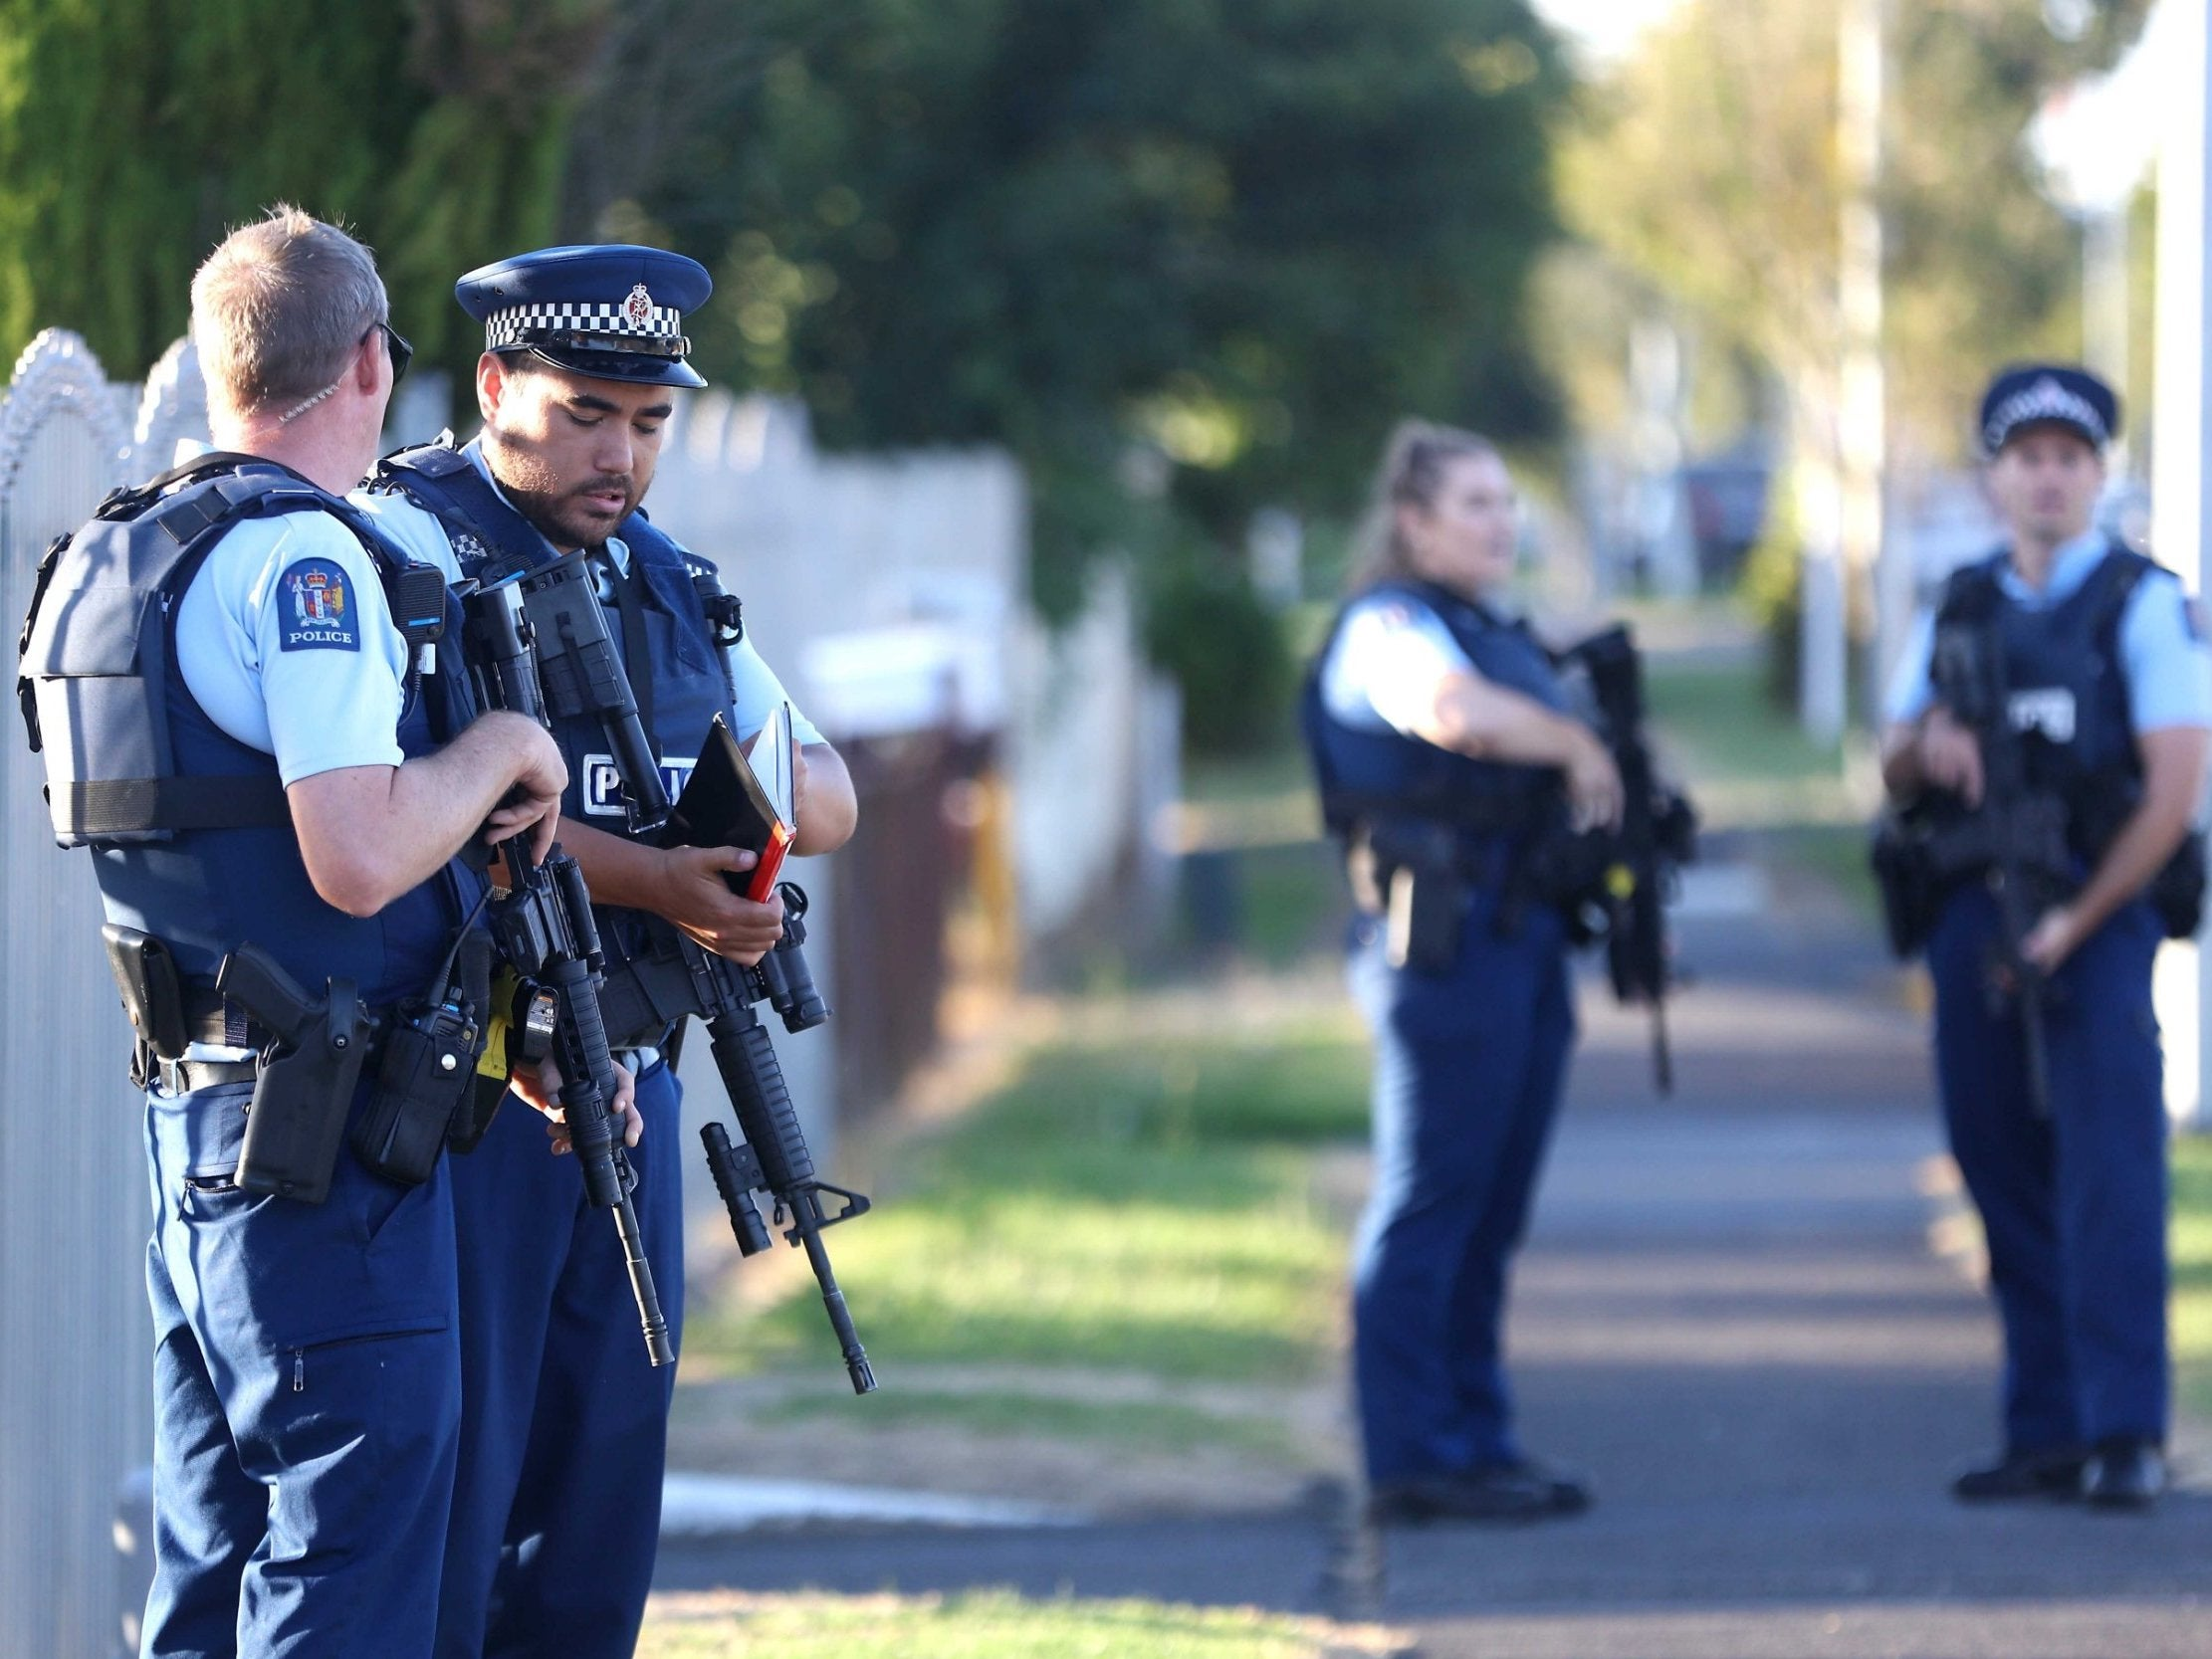 New Zealand Shooter Live Stream Image: Live: Police Evacuate Neighbours Of